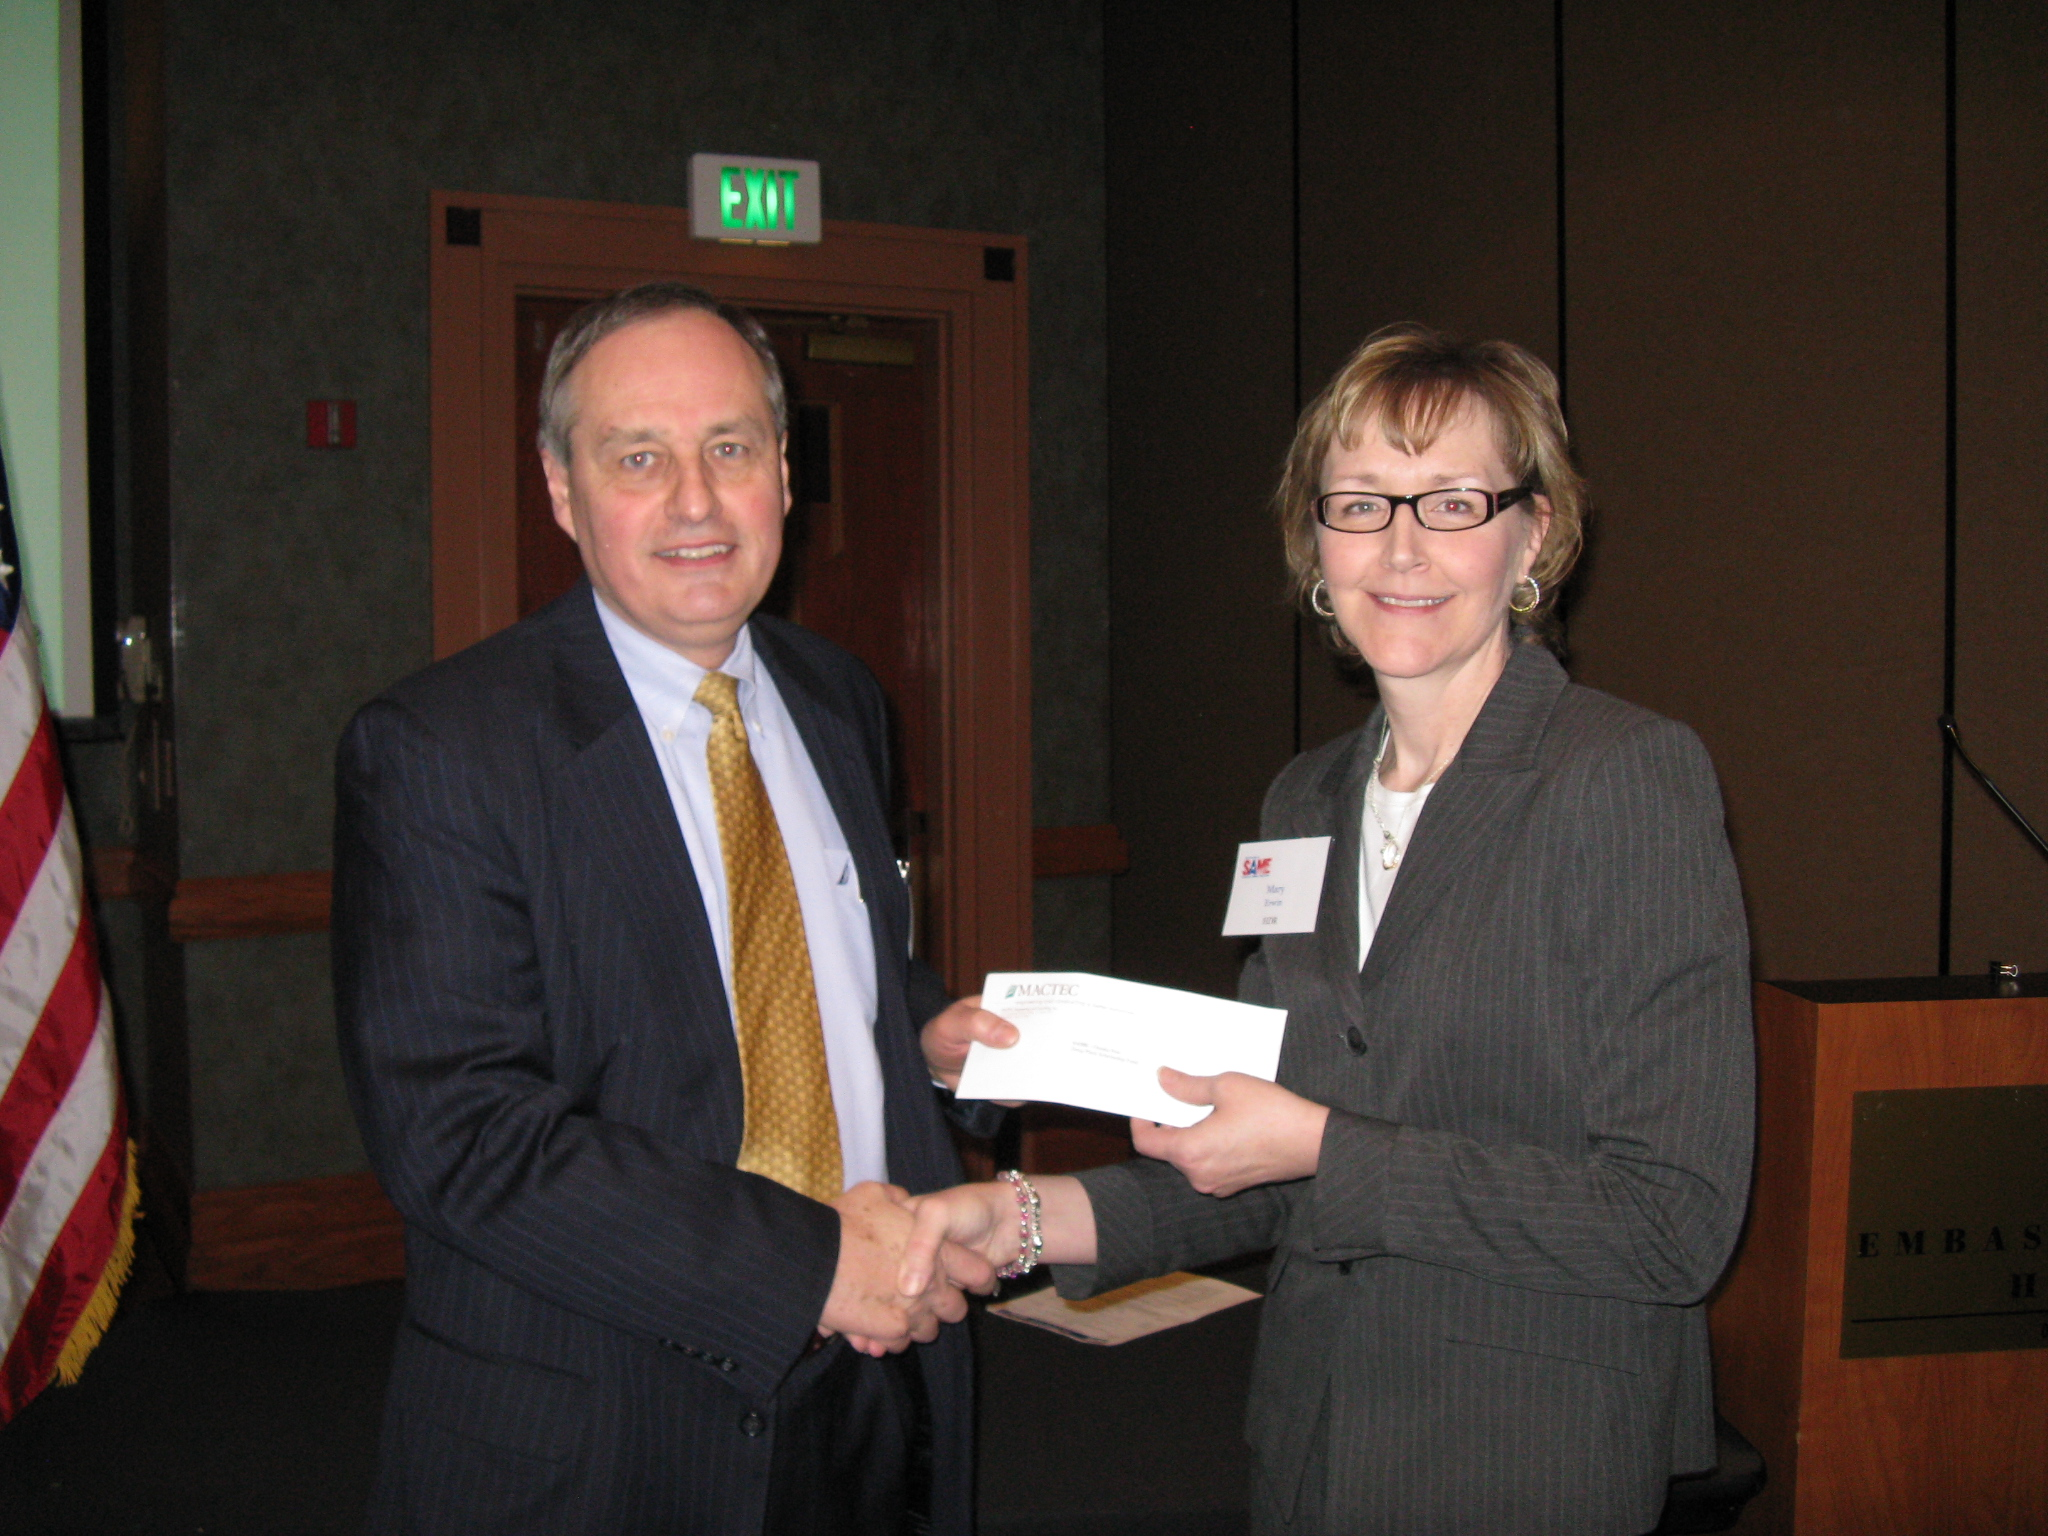 MACTEC (Al Fillip) presents check to Omaha Post President Mary Erwin for the Doug Plack Scholarship Fund.